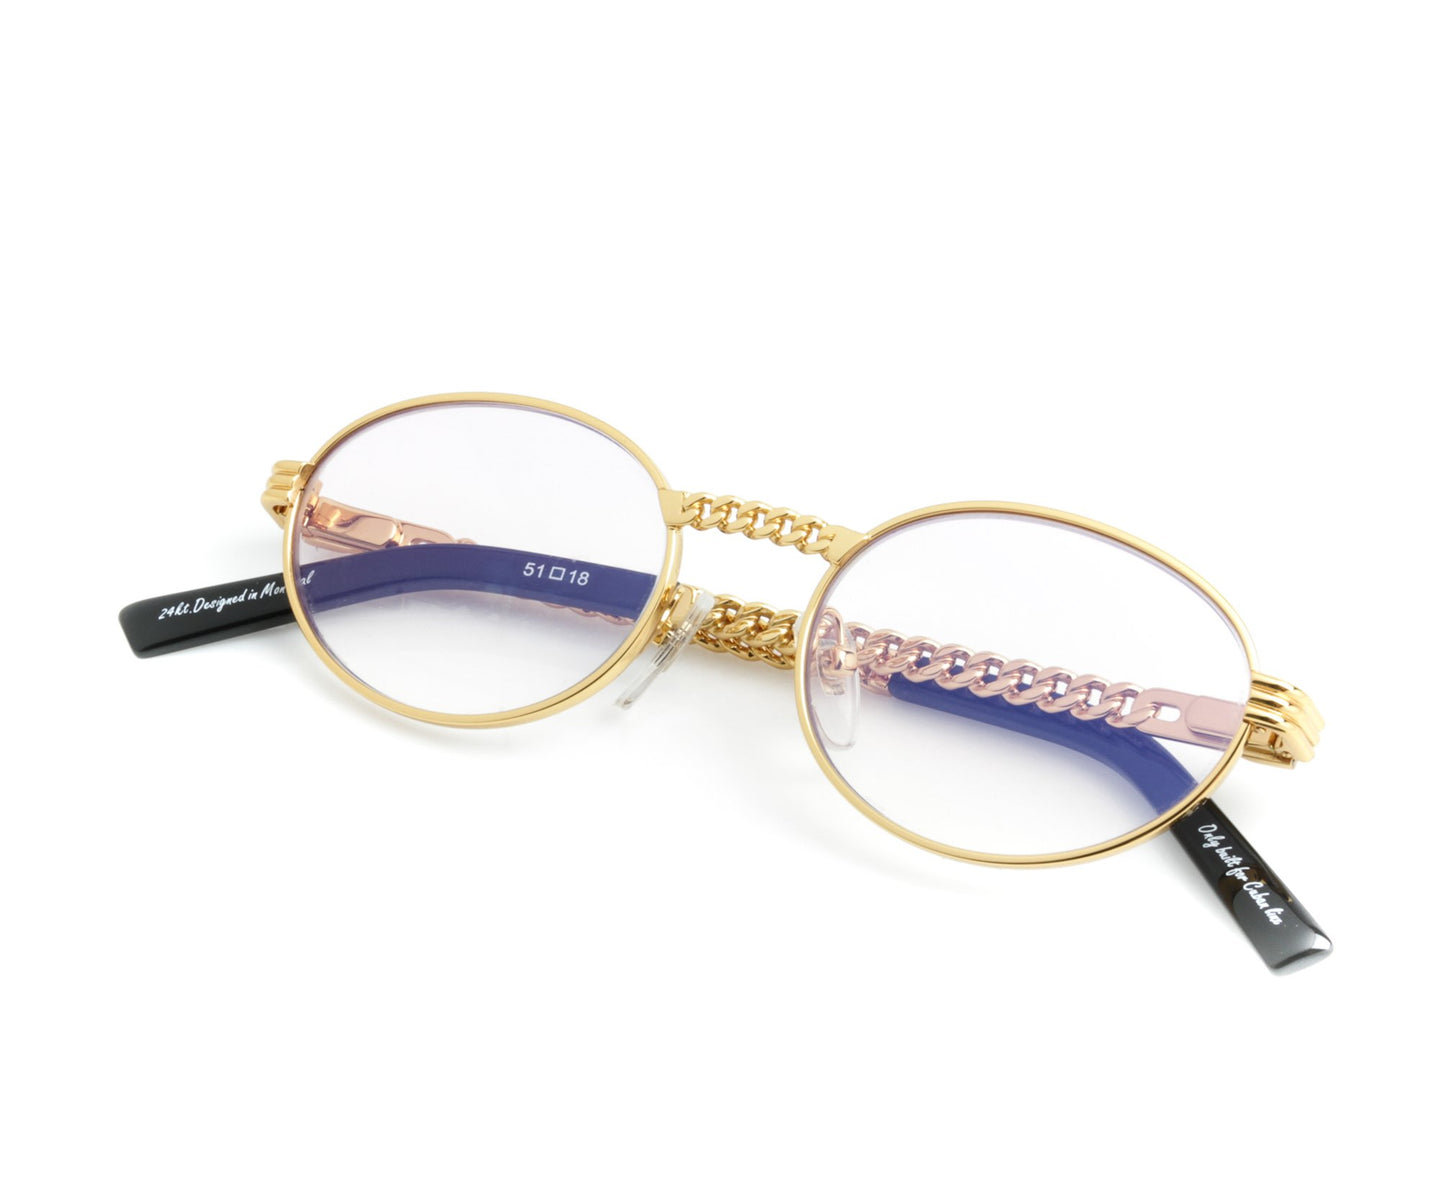 VF Cuban Link Pac 24KT Gold (Lilac Flash Purple) Thumb, VF Masterpiece , glasses frames, eyeglasses online, eyeglass frames, mens glasses, womens glasses, buy glasses online, designer eyeglasses, vintage sunglasses, retro sunglasses, vintage glasses, sunglass, eyeglass, glasses, lens, vintage frames company, vf